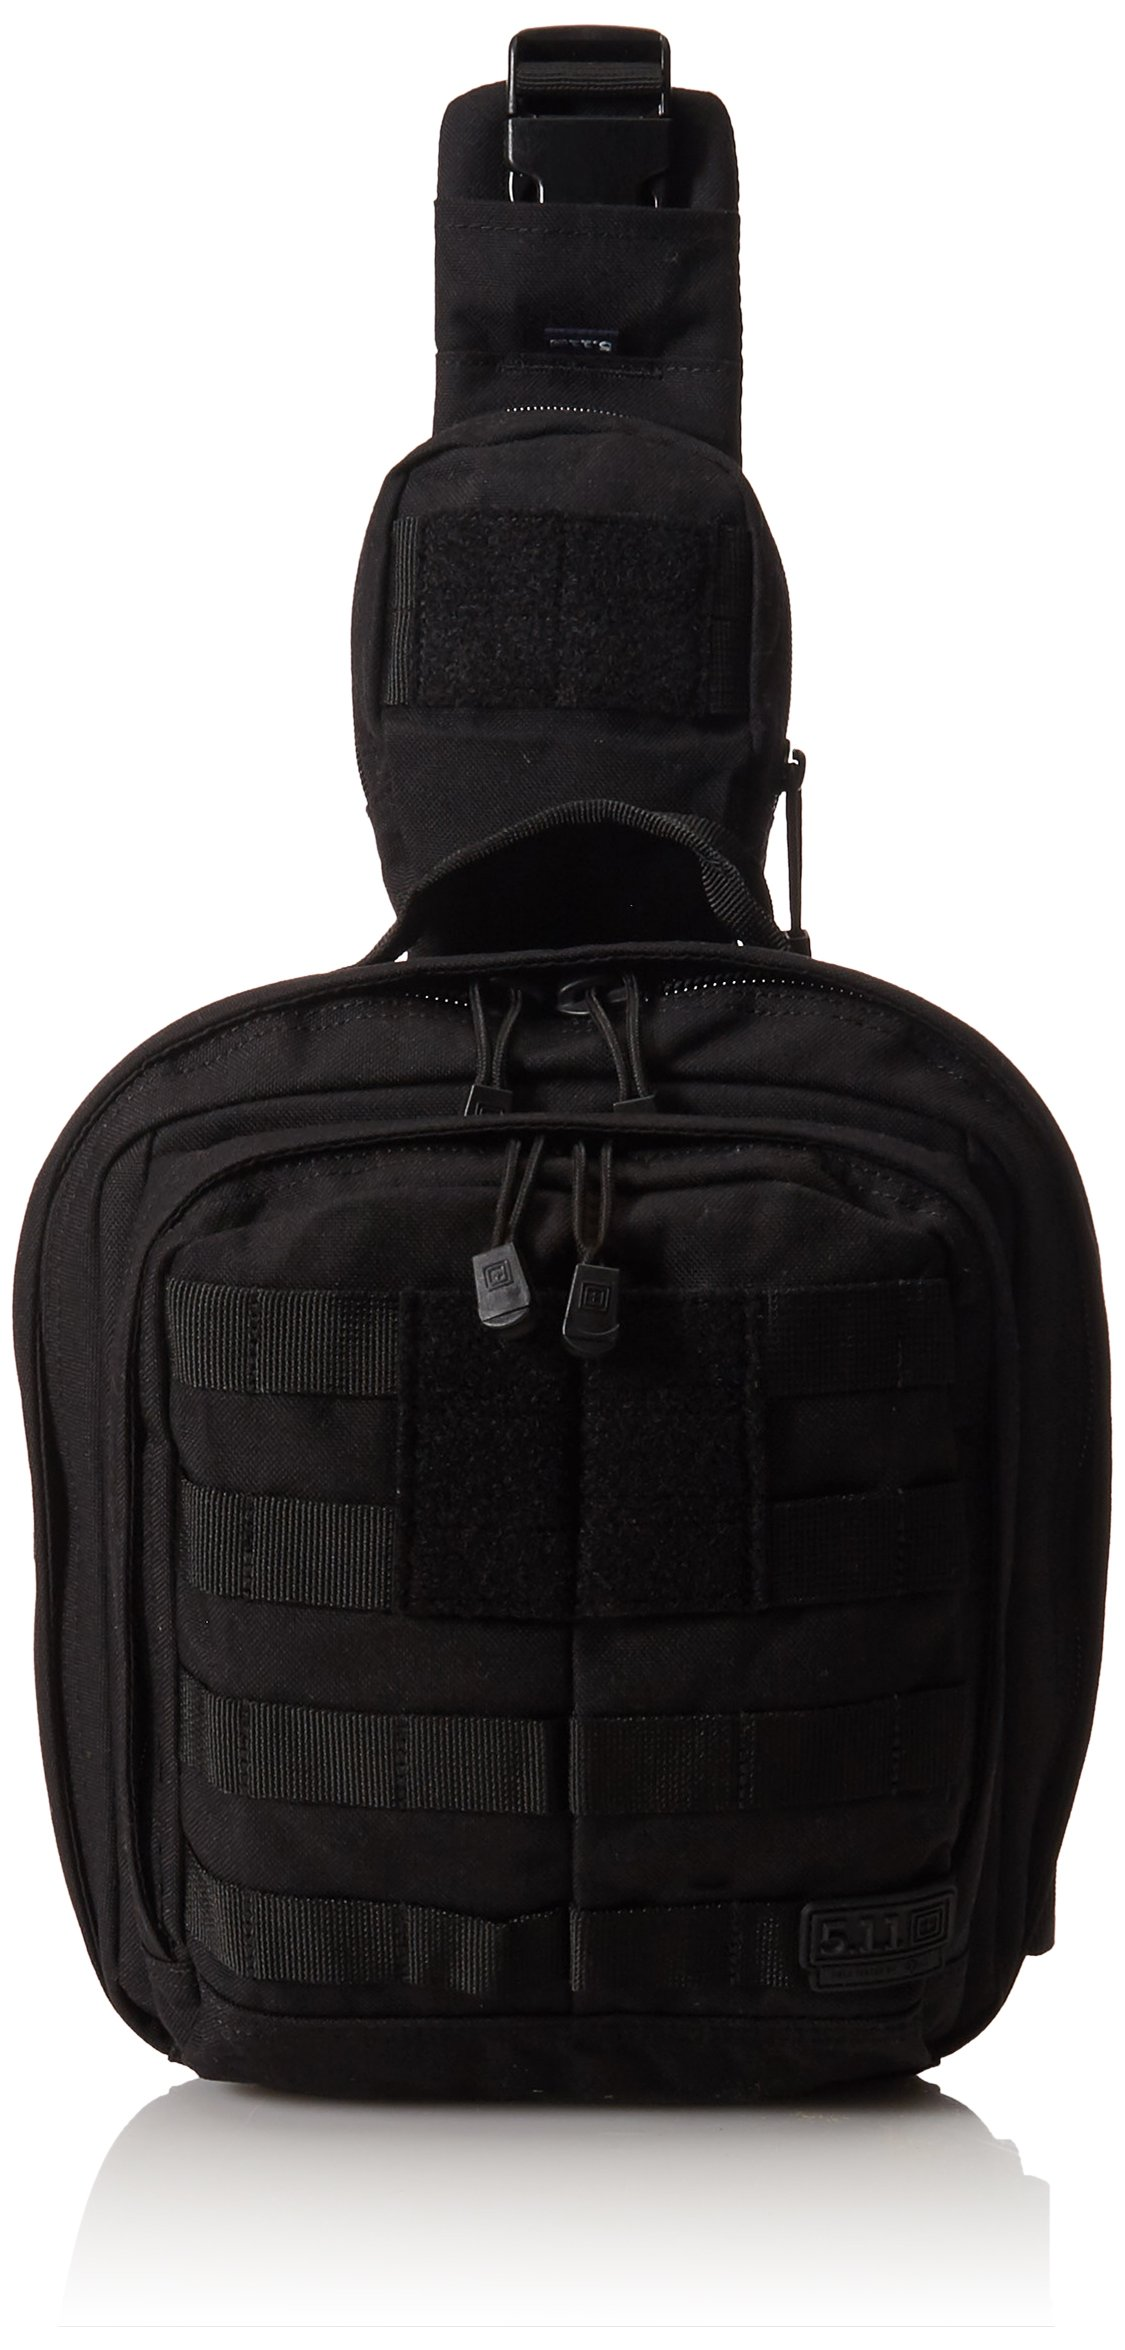 5.11 RUSH MOAB 6 Tactical Sling Pack Military Molle Backpack Bag, Style 56963, Black by 5.11